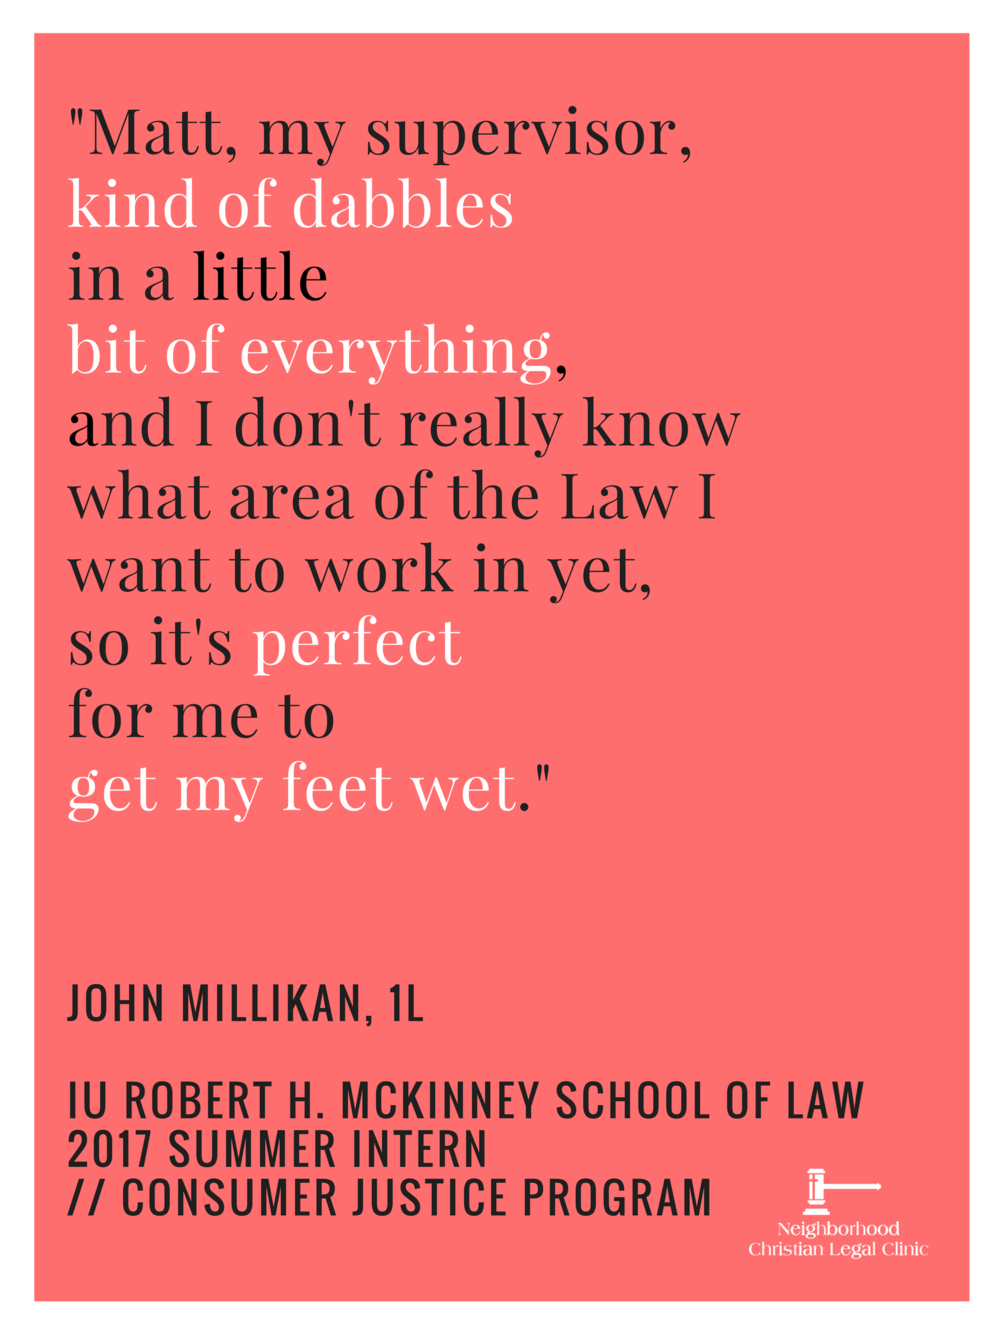 2017 Summer Intern Quote - John Millikan - Canva.png